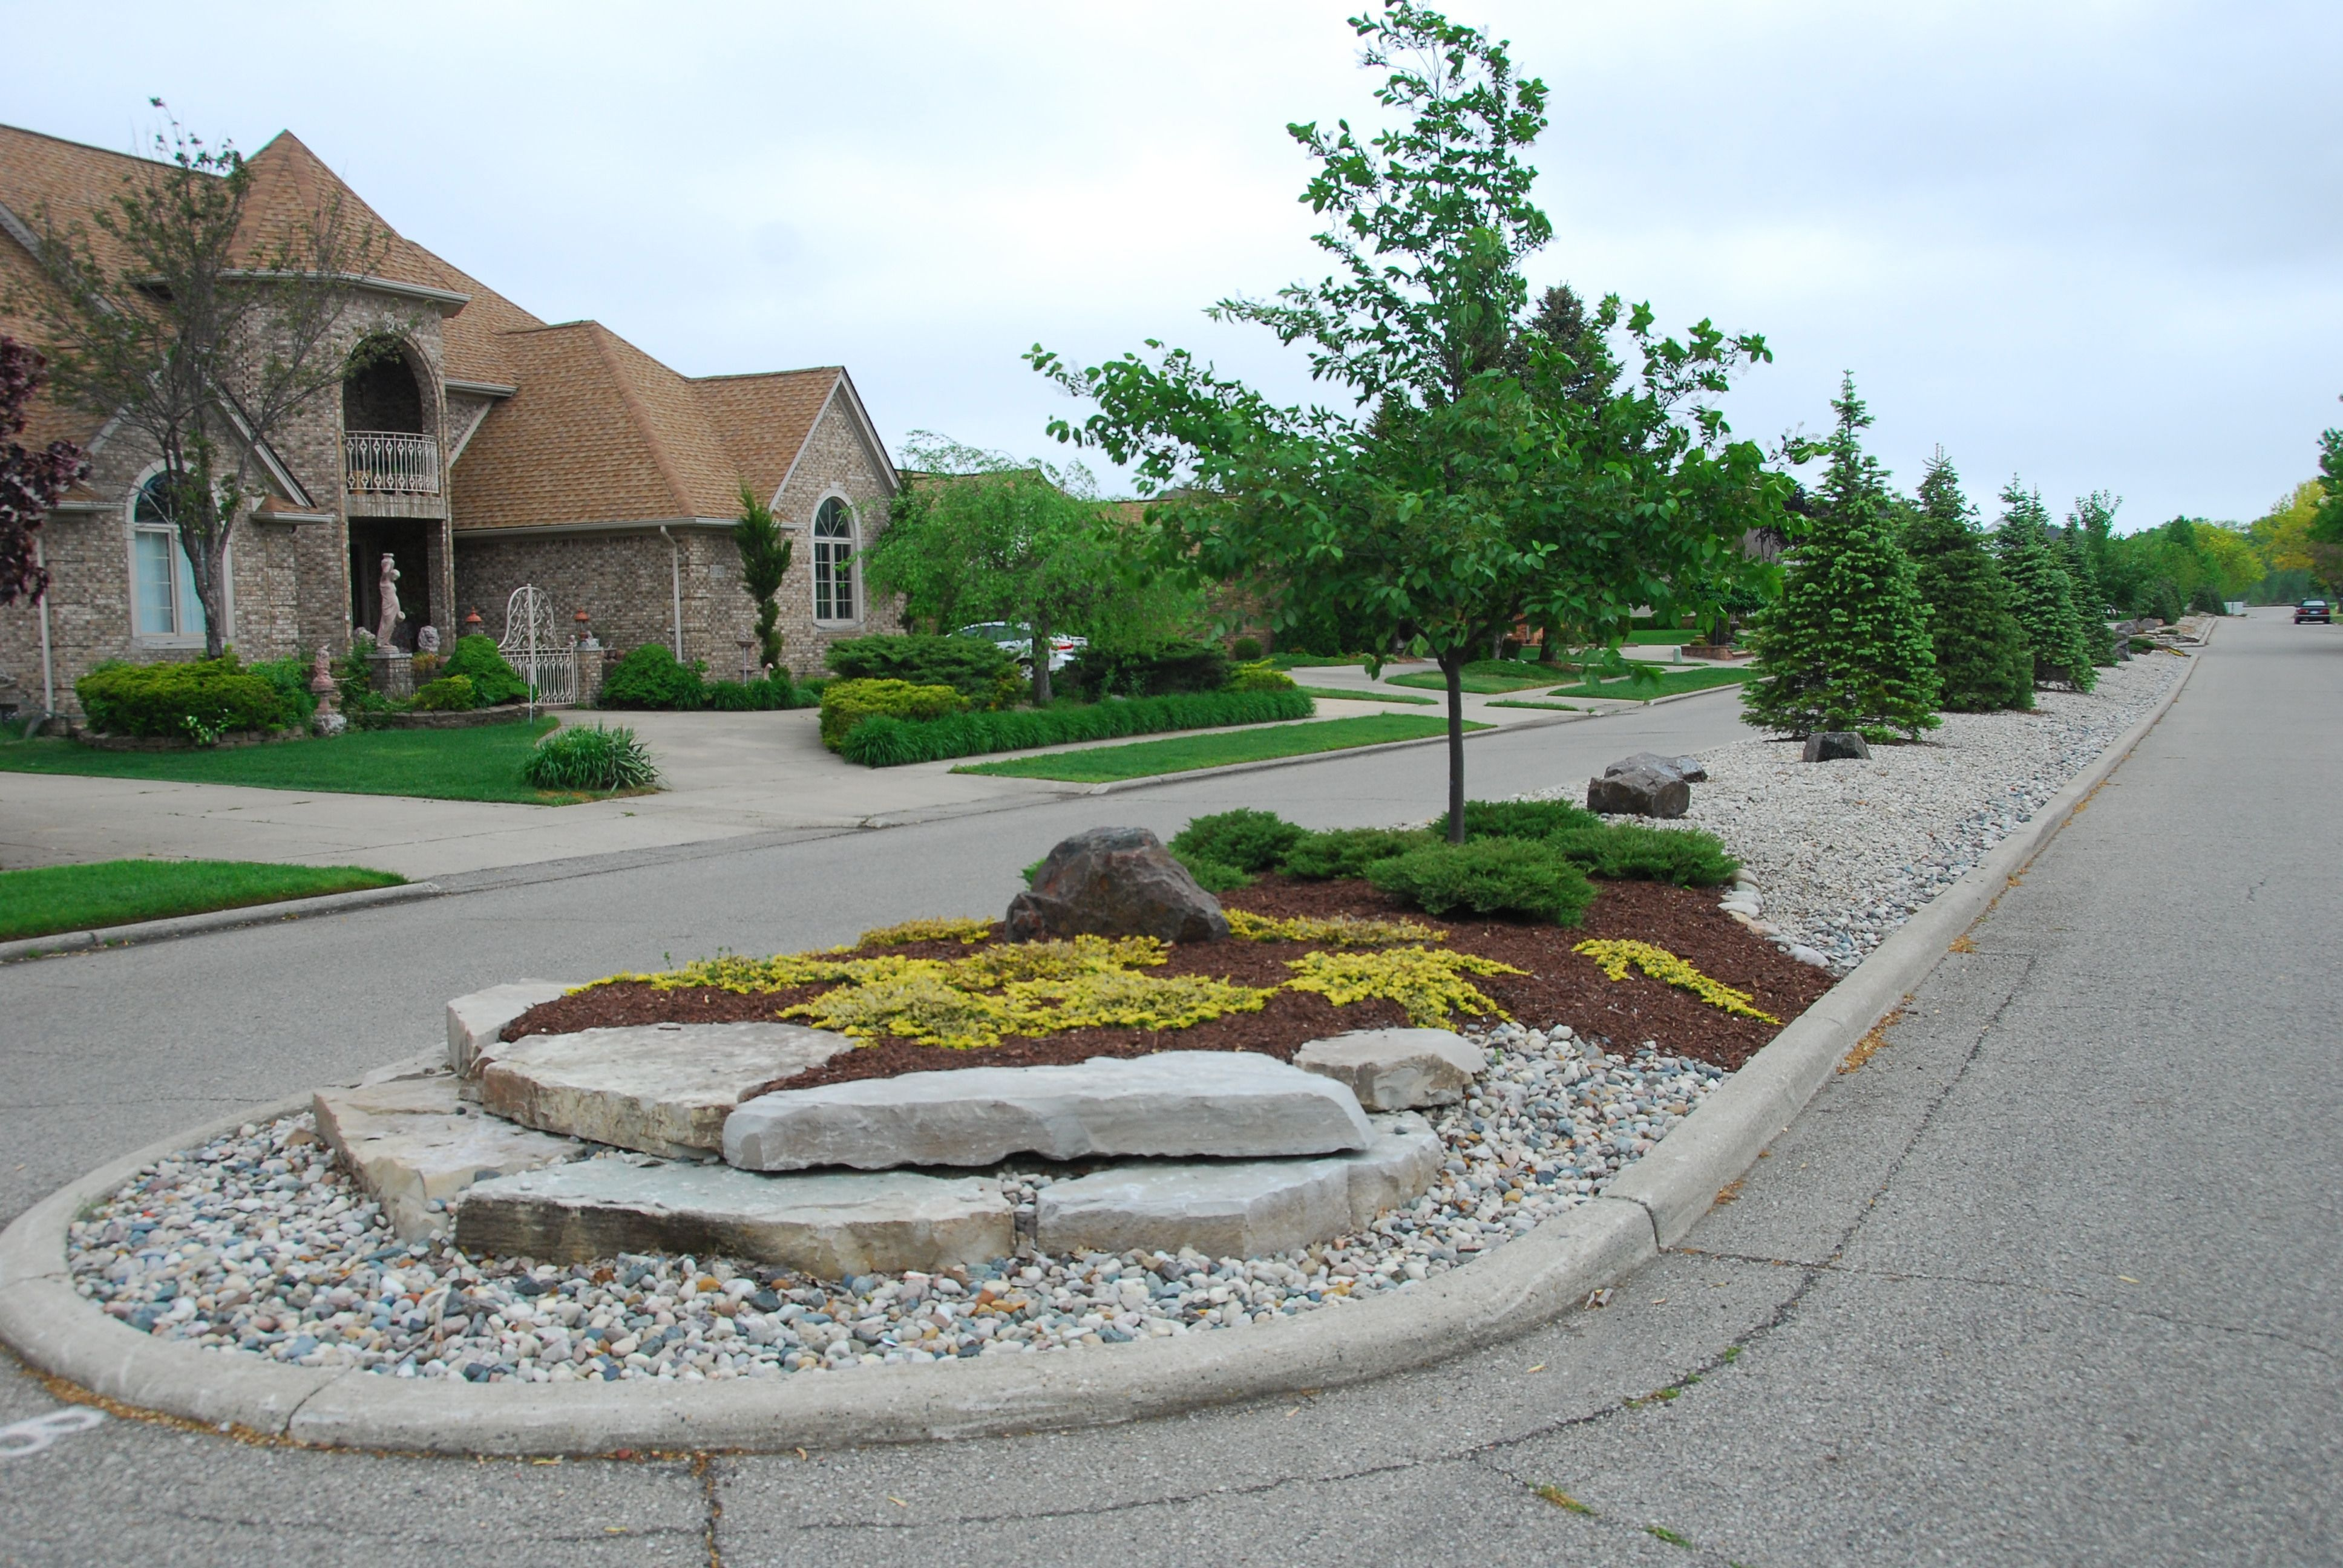 Subdivision Landscape Island With Images Landscaping Entrance Subdivision Entrance Commercial Landscaping